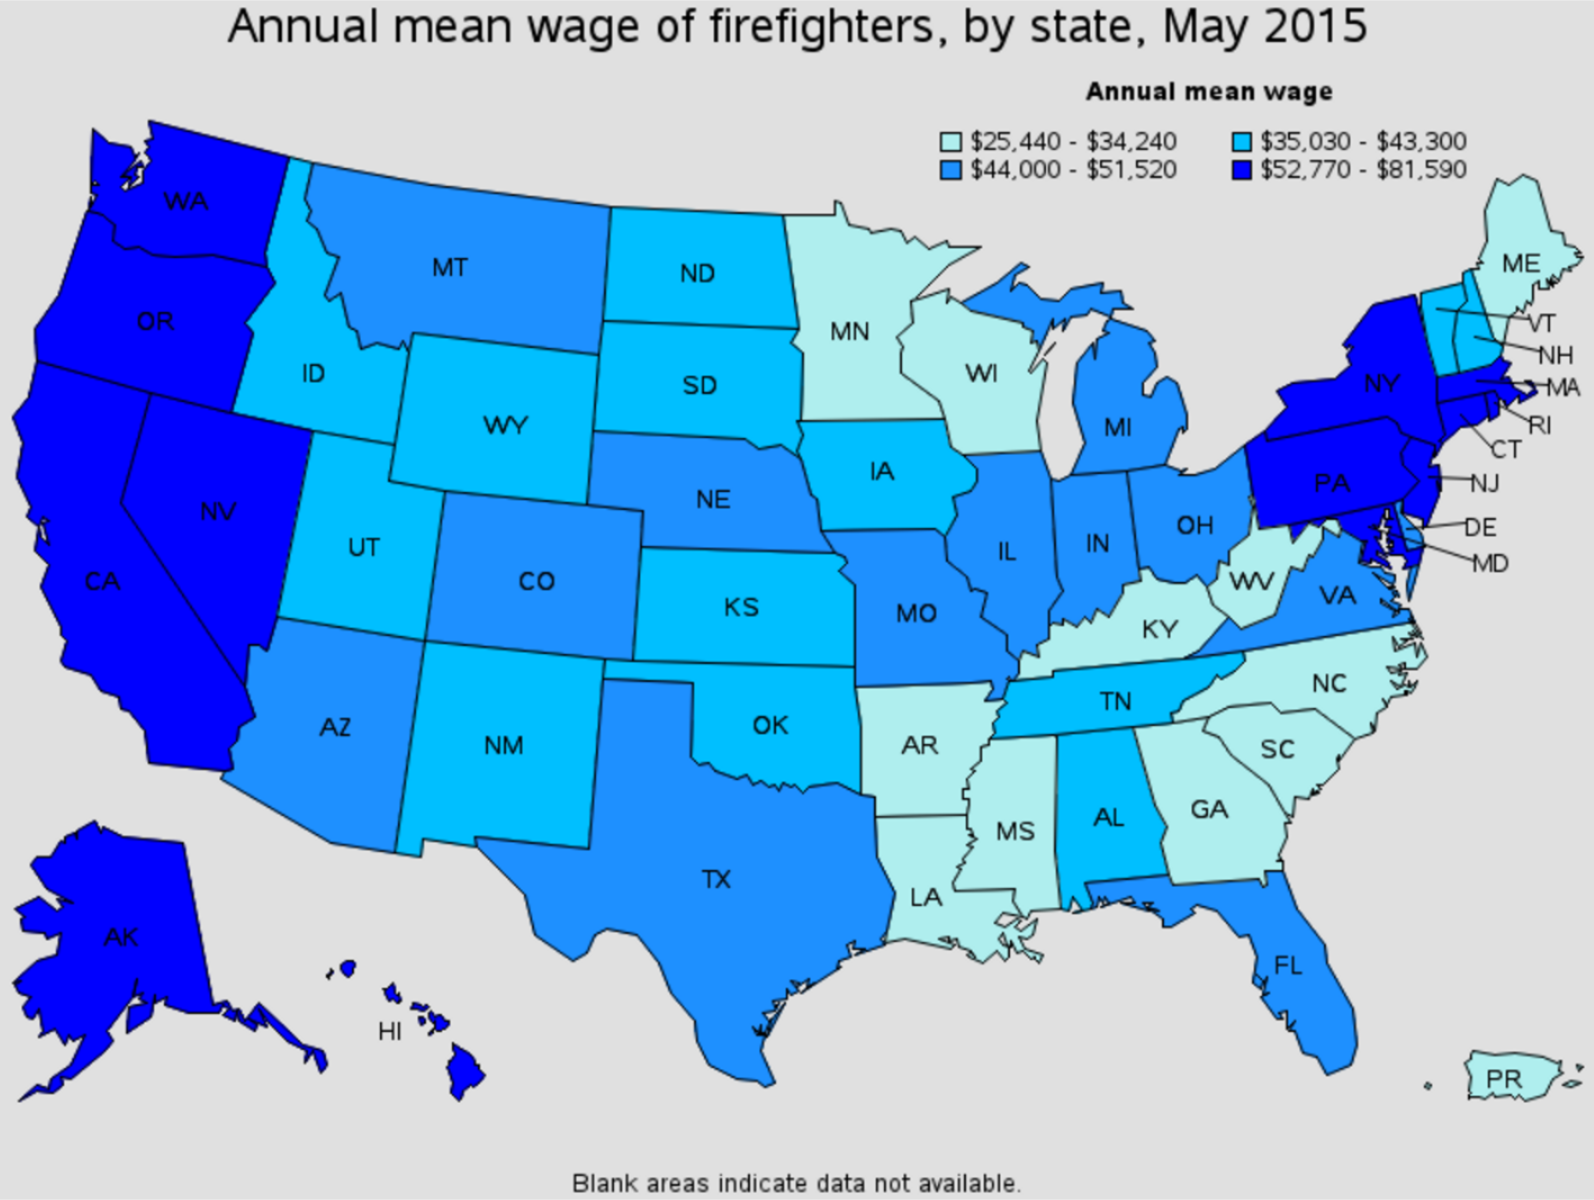 firefighter average salary by state Waterproof Louisiana